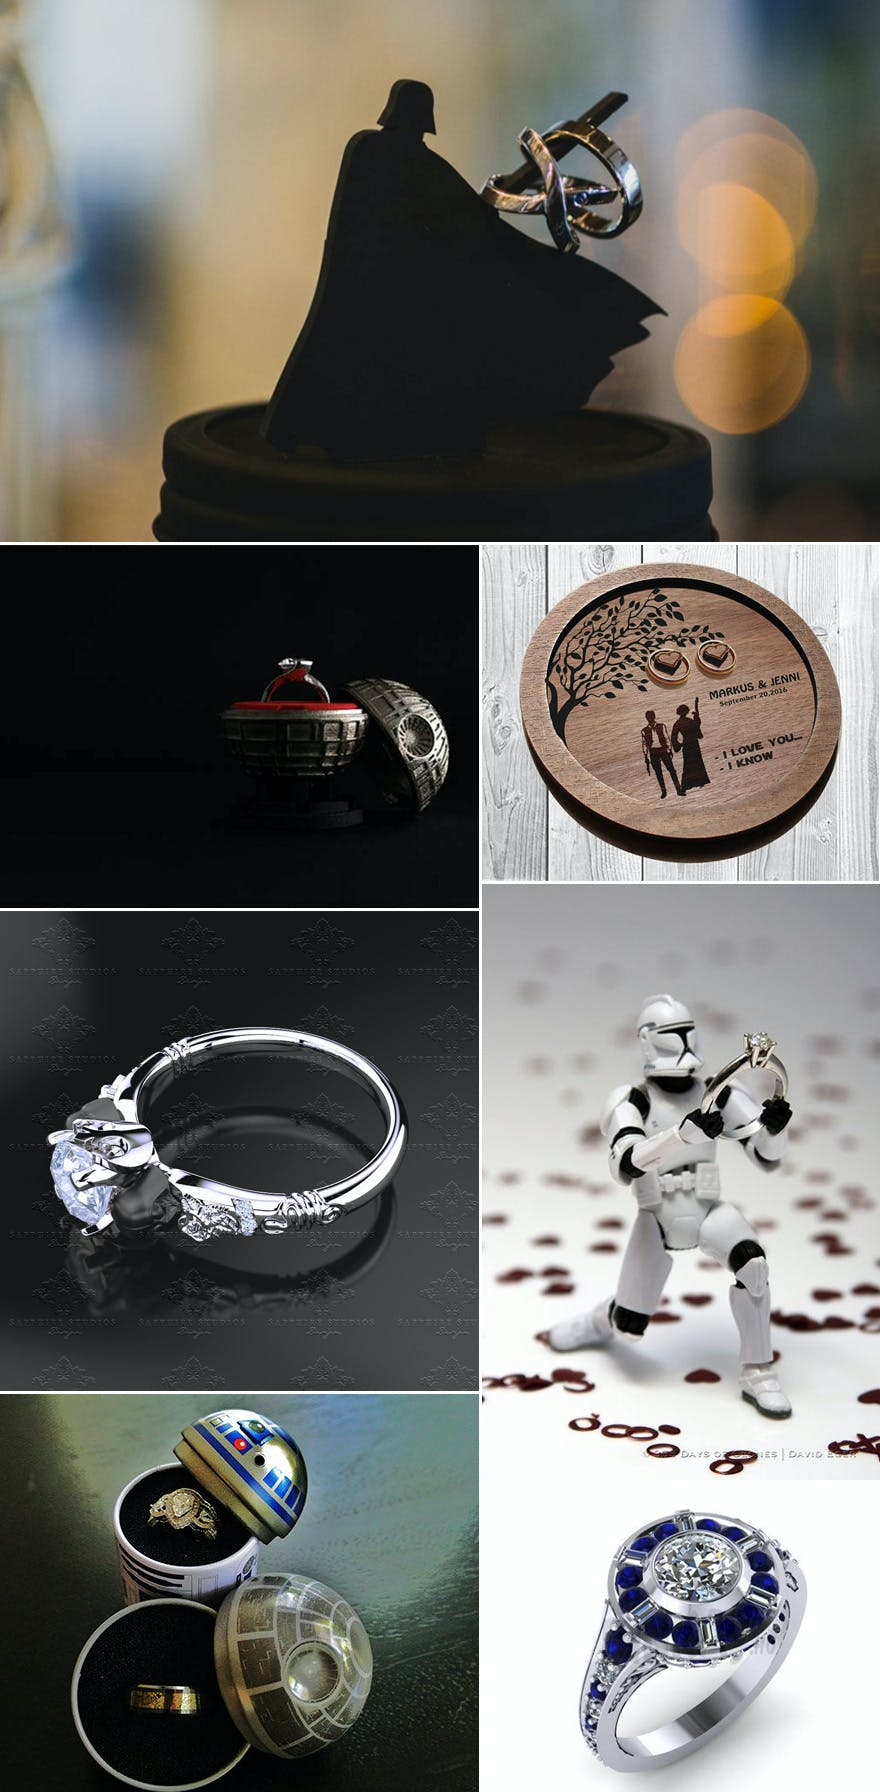 Star Wars Rings and Ring Boxes with Death Star Ring Box and R2D2 Proposal and R2D2 Blue and White Ring R2D2 Inspired Halo Engagement Ring 14 Karat White Gold by Paul Michael Design | Confetti.co.uk